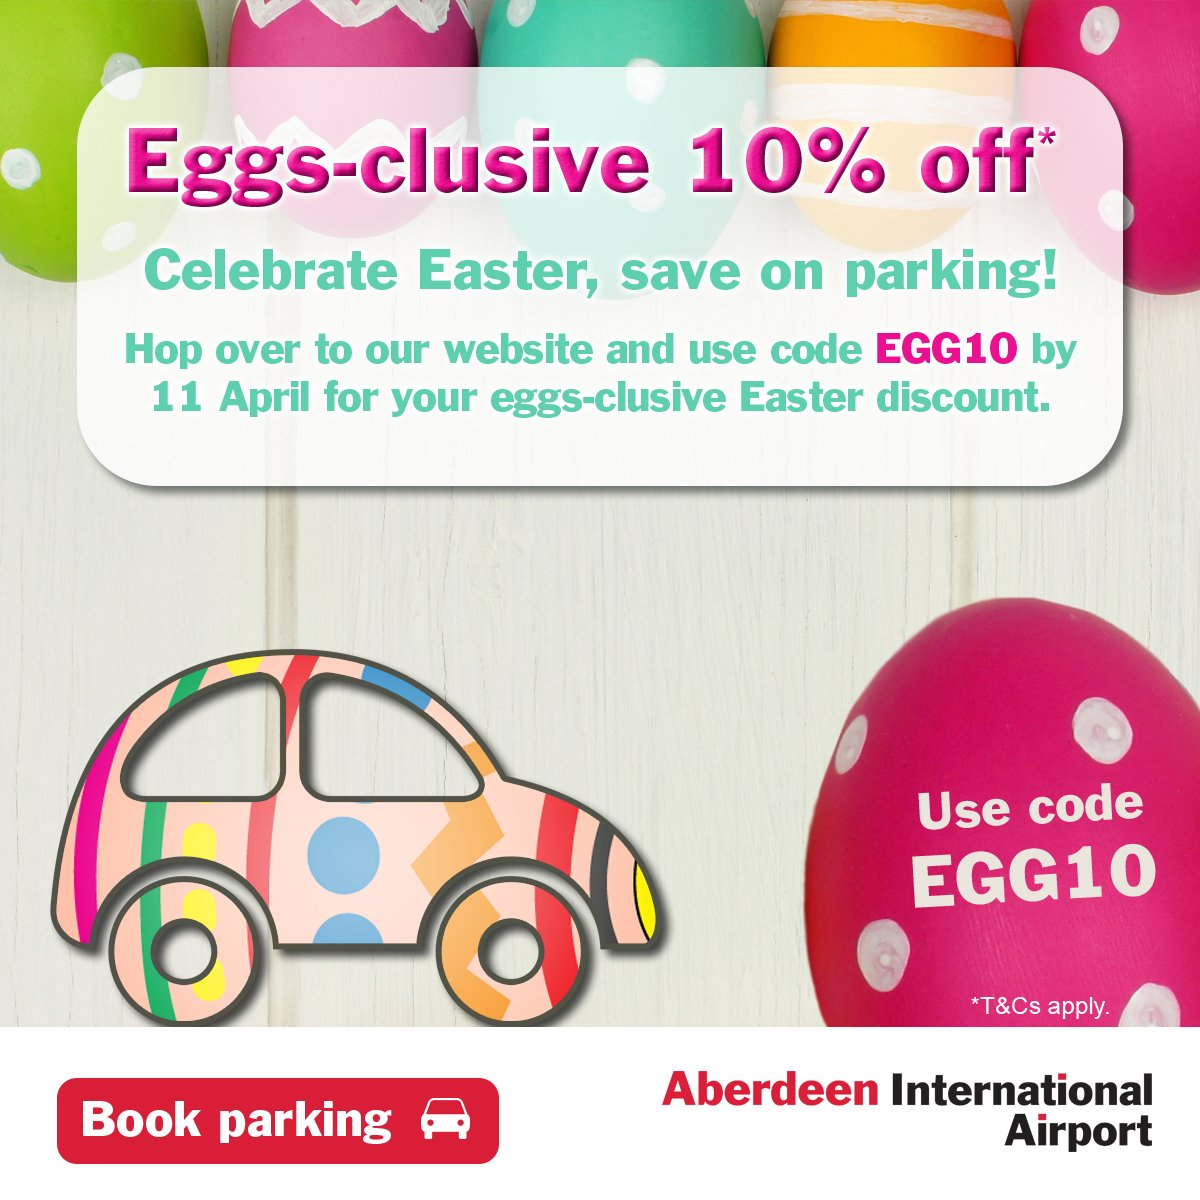 Eggs-clusive Easter 10% off Long Stay parking when you use code EGG10 before 11 April: